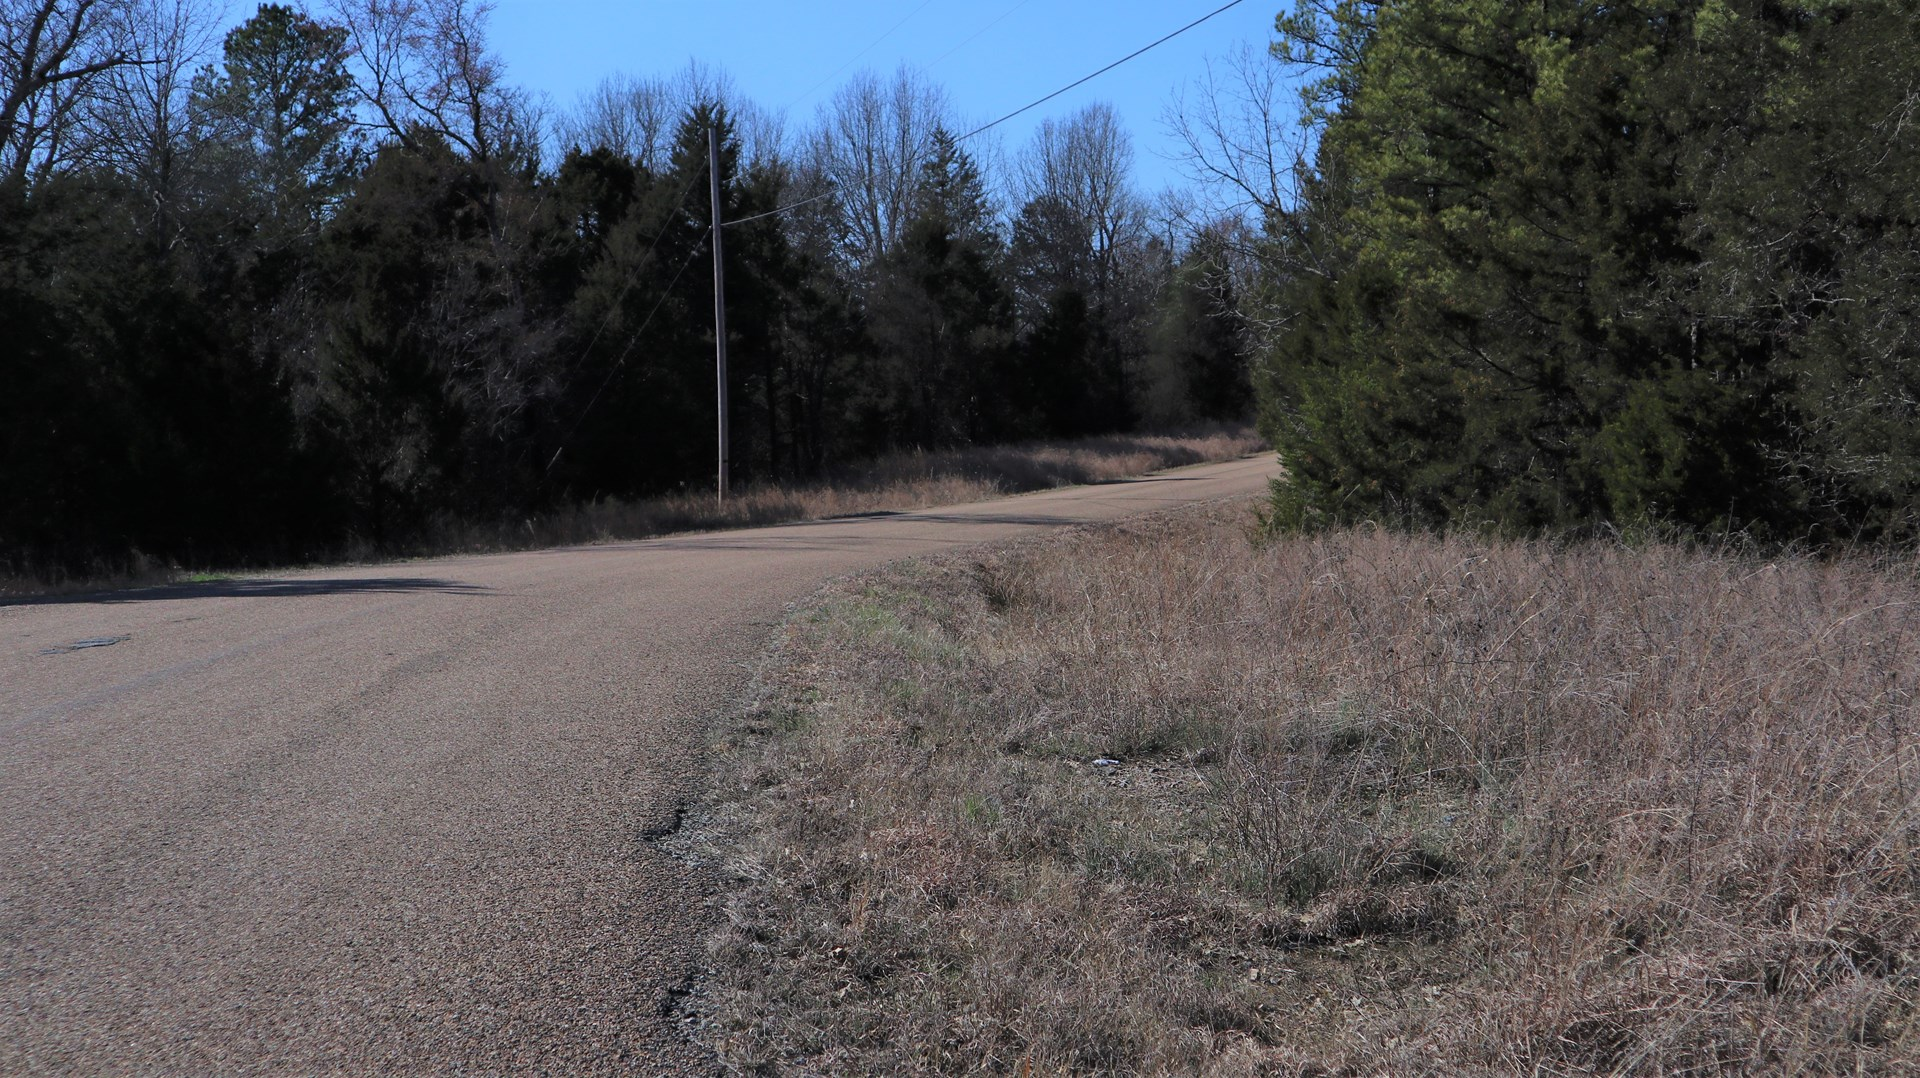 VACANT LAND NEAR LAKE NORFORK IN ARKANSAS